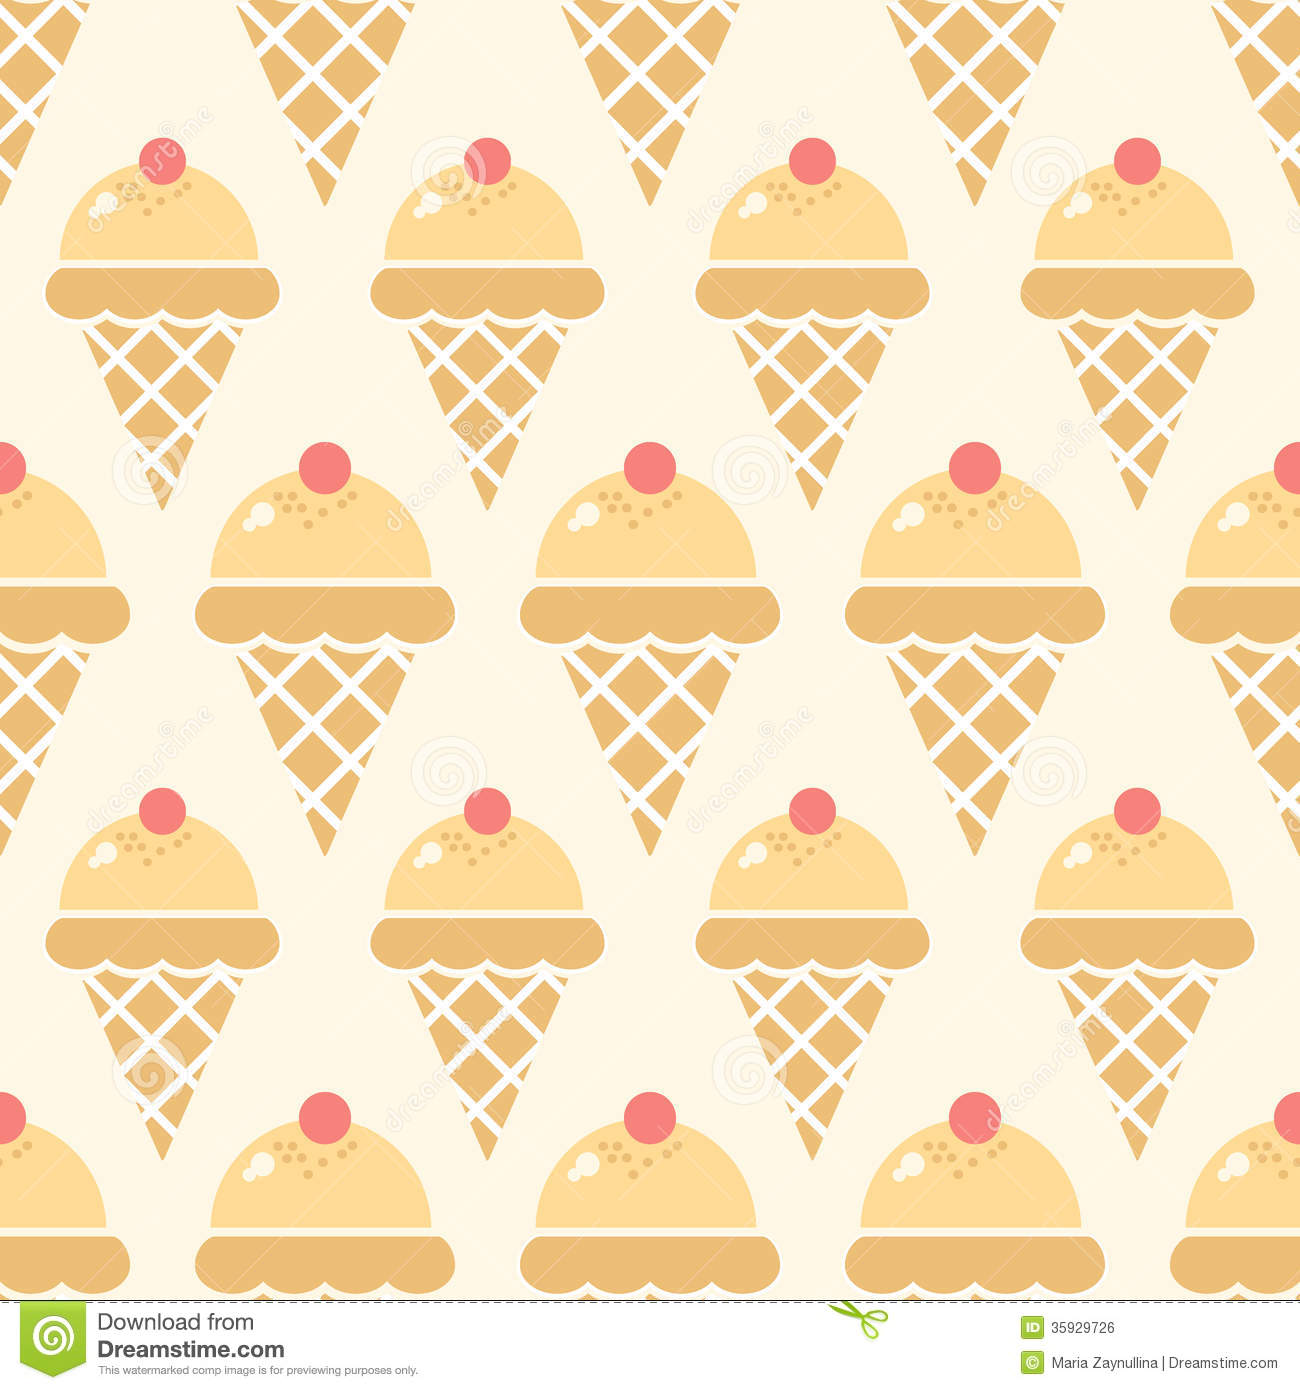 Download Melting Ice Cream Wallpaper Gallery: Ice Cream Background Royalty Free Stock Image